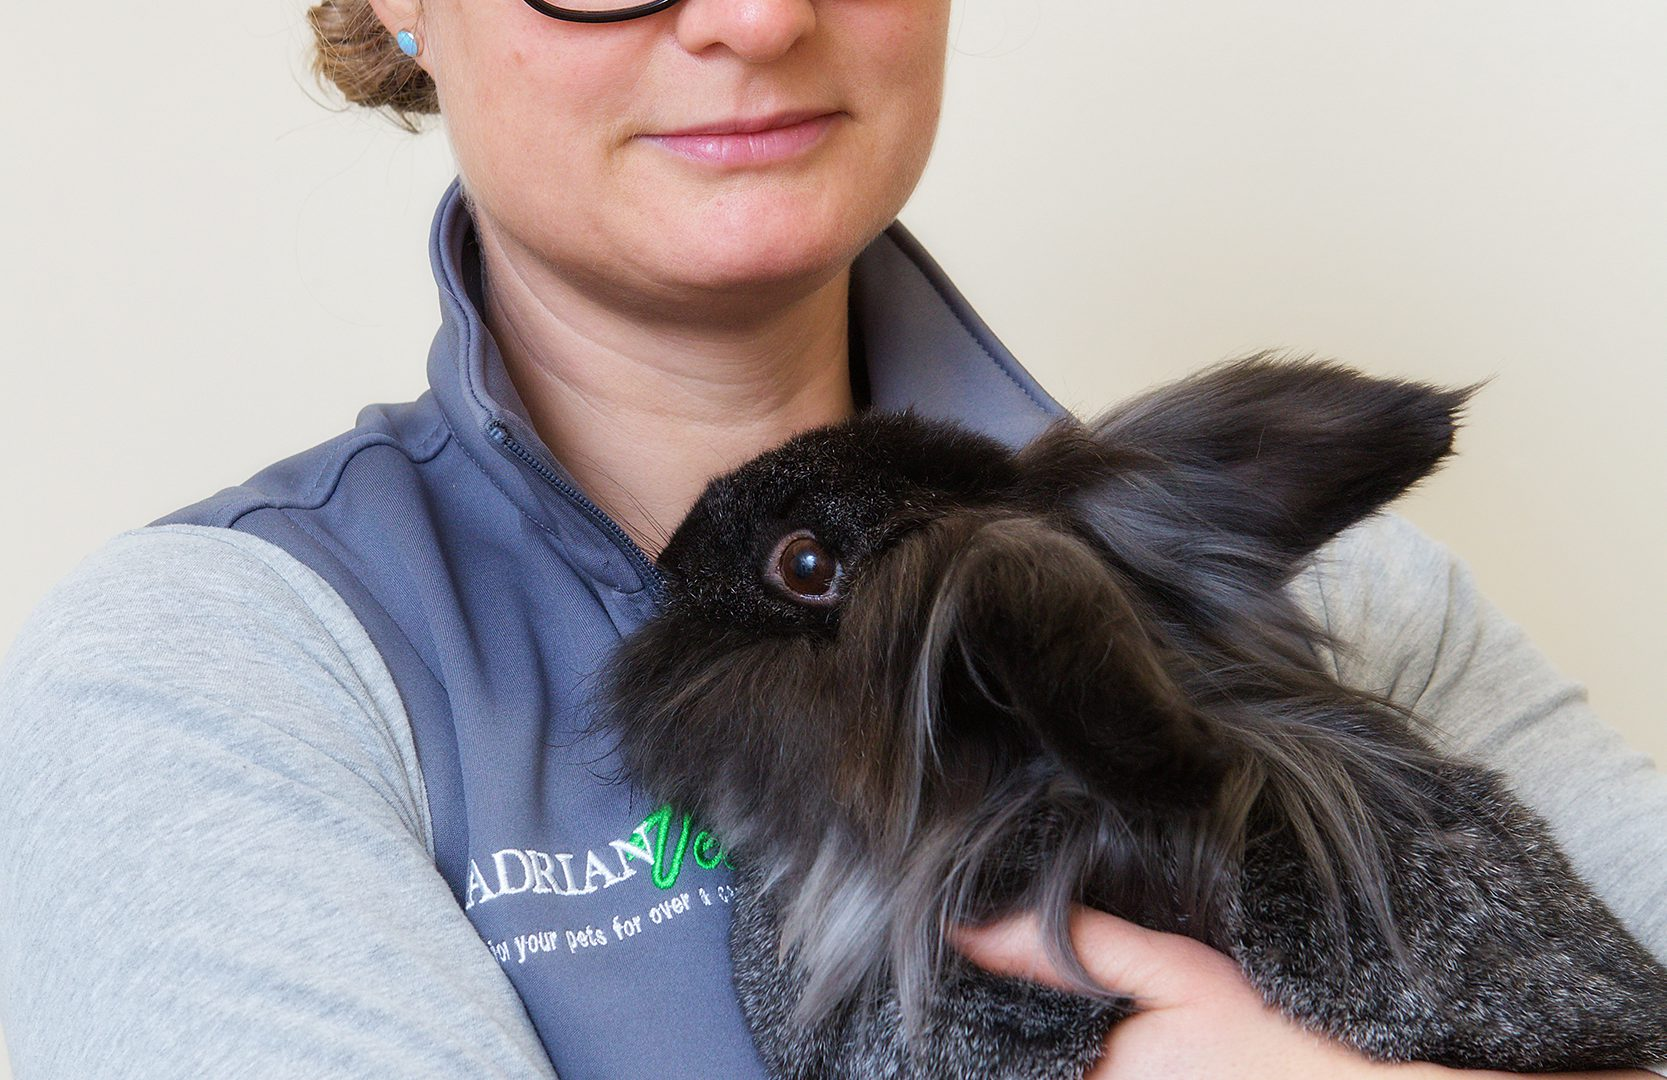 Owners urged to vaccinate rabbits after disease warning